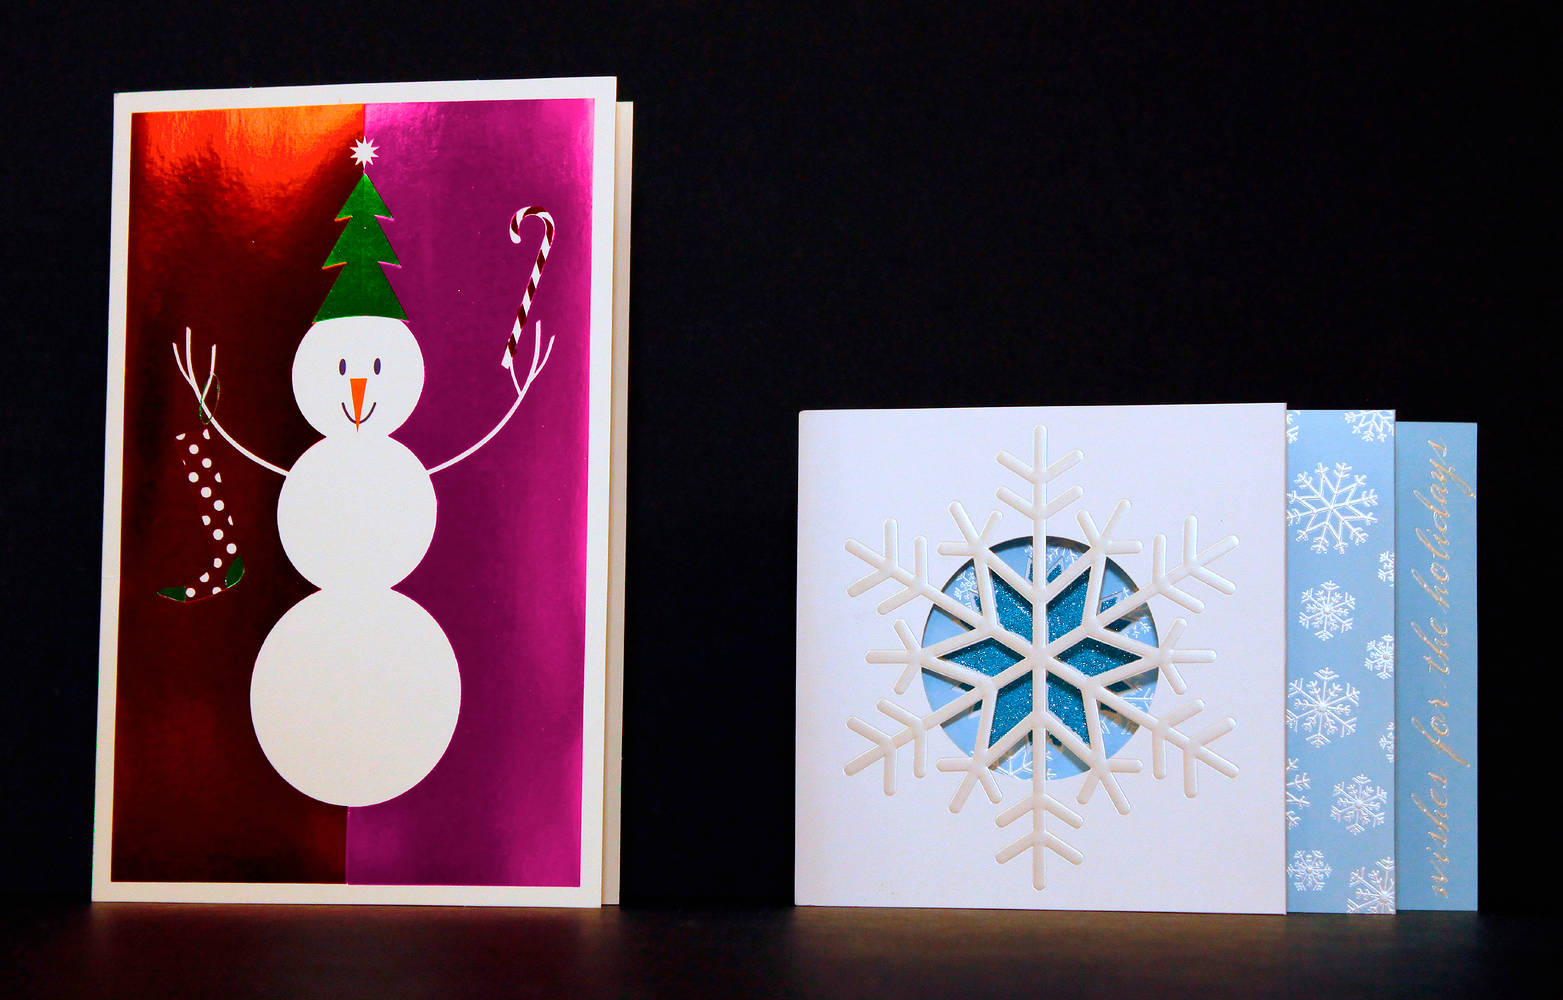 Snowman and snowflake cards american greetings picture book studio oil painting snowman and snowflake cards american greetings by valerie lesiak kristyandbryce Images